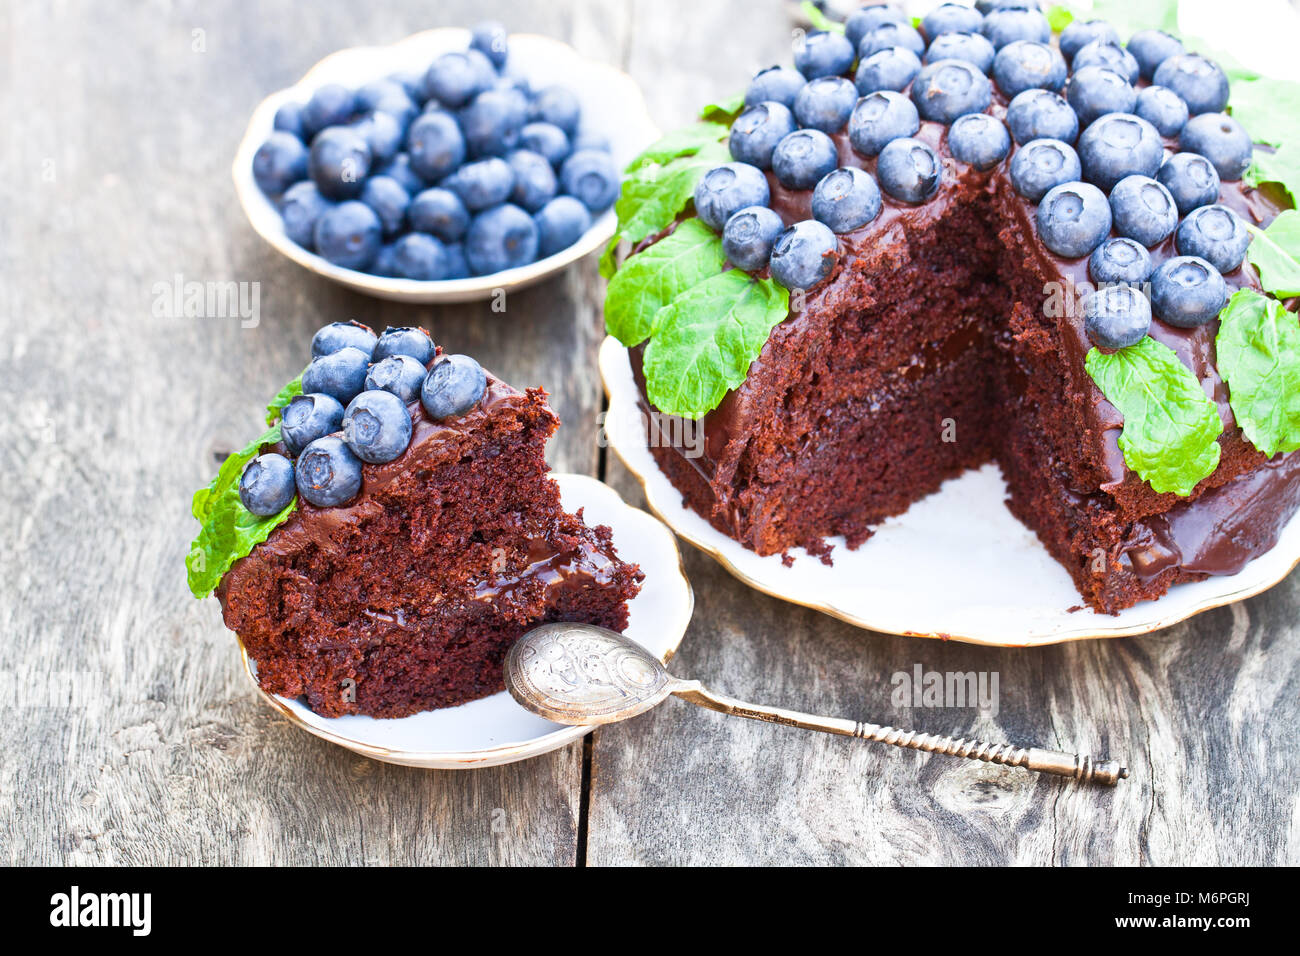 Chocolate  cake with chocolate cream and fresh blueberries and mint leaves - Stock Image